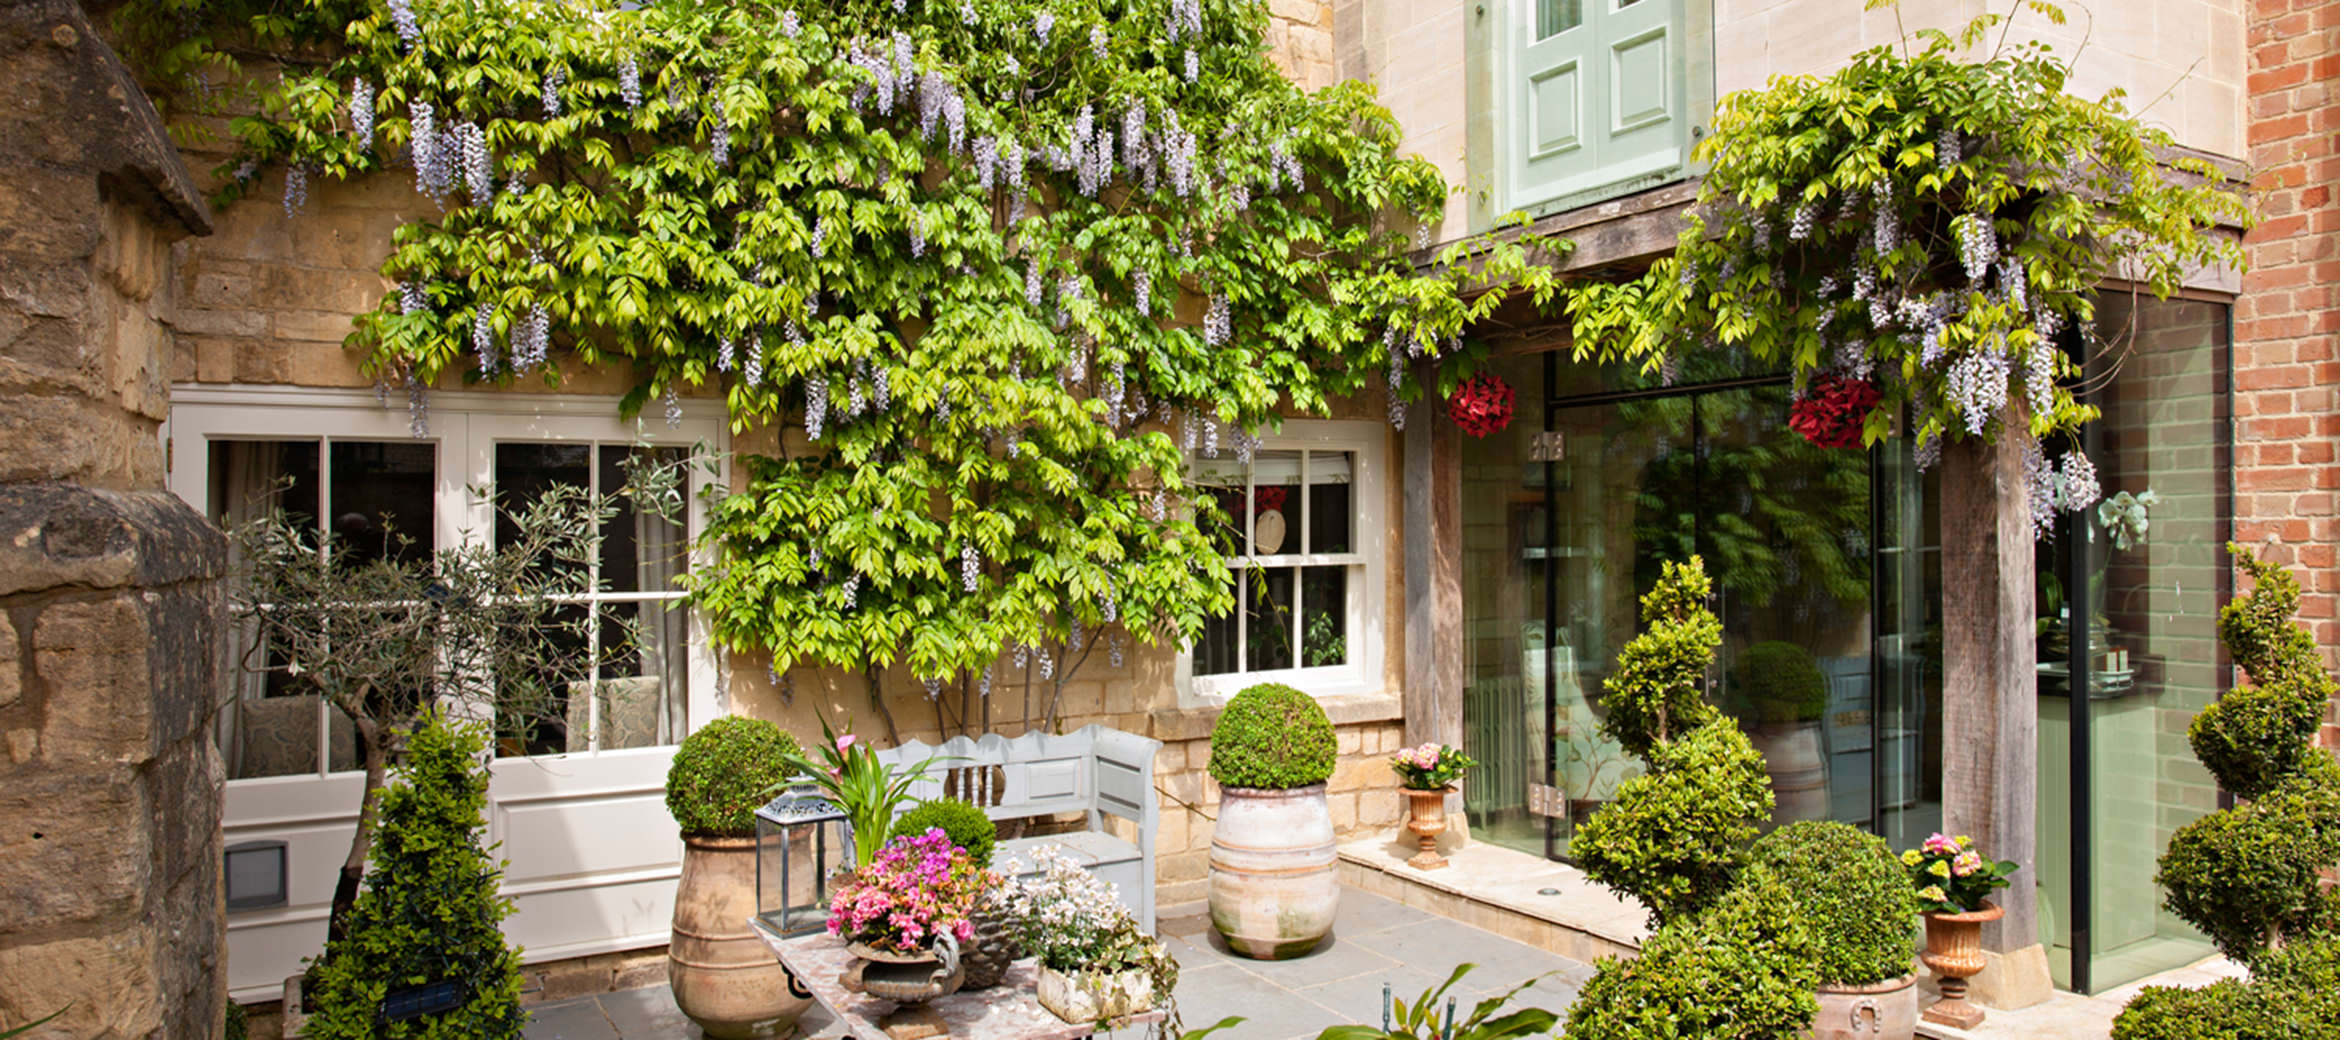 Singer-House-luxury-cotswold-cottage-Garden001